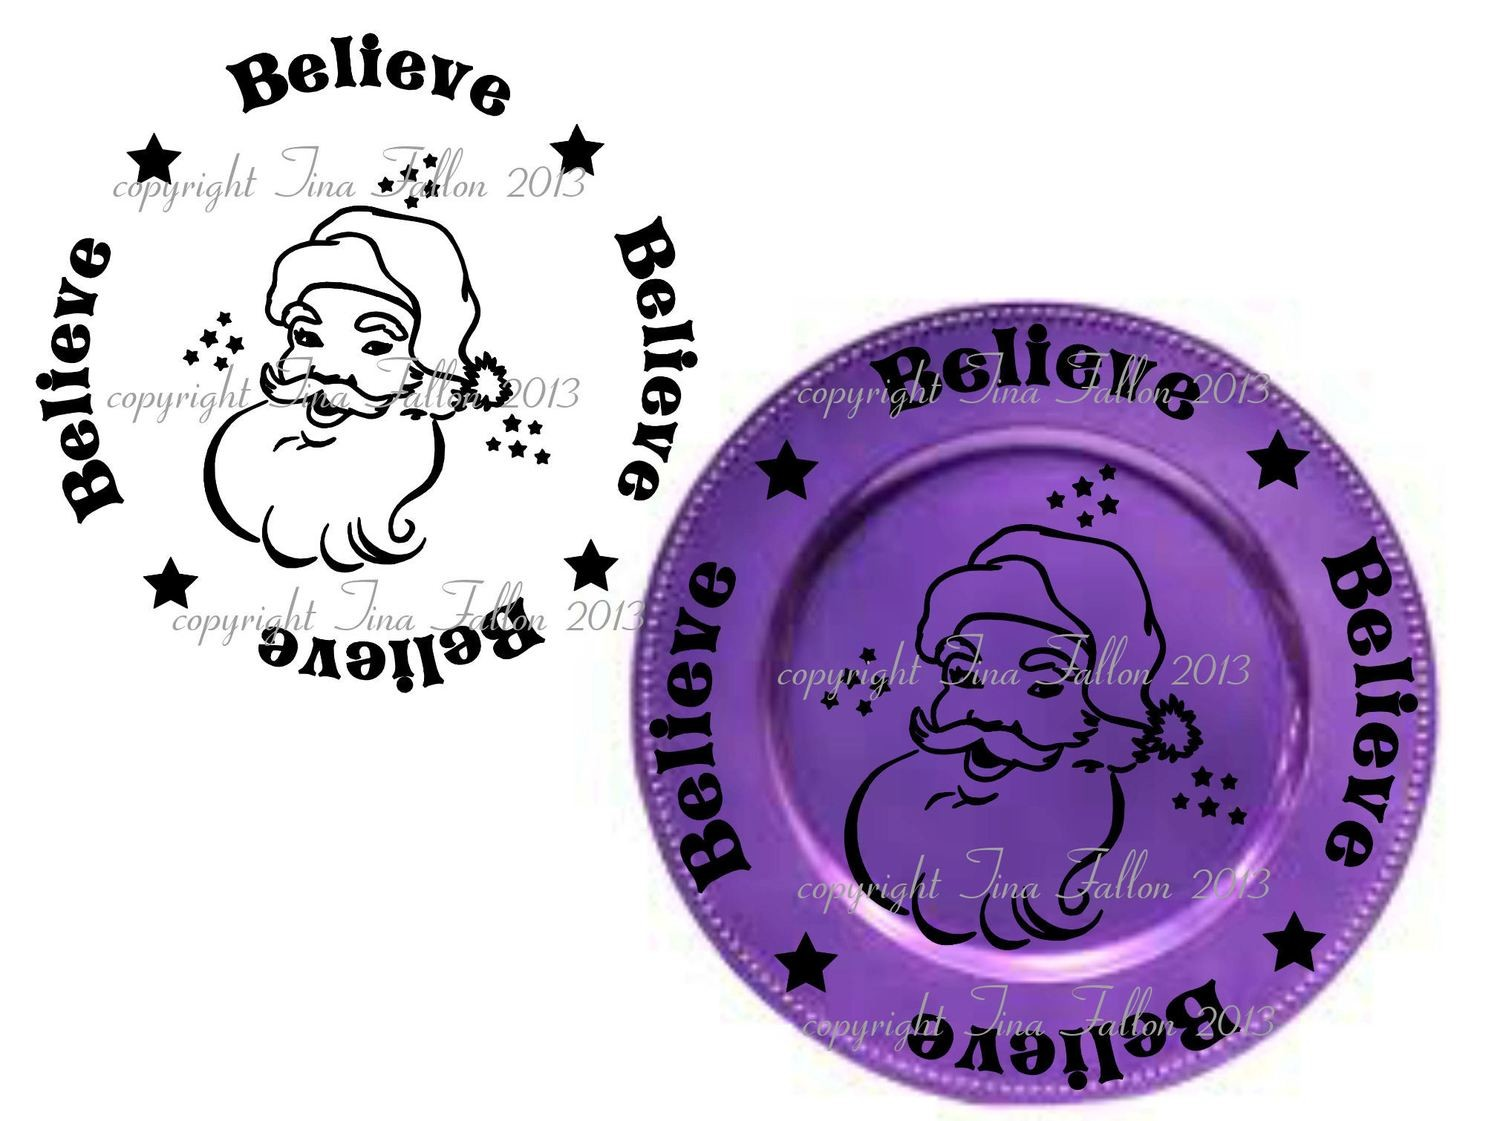 Believe Vinyl design for Christmas charger plates